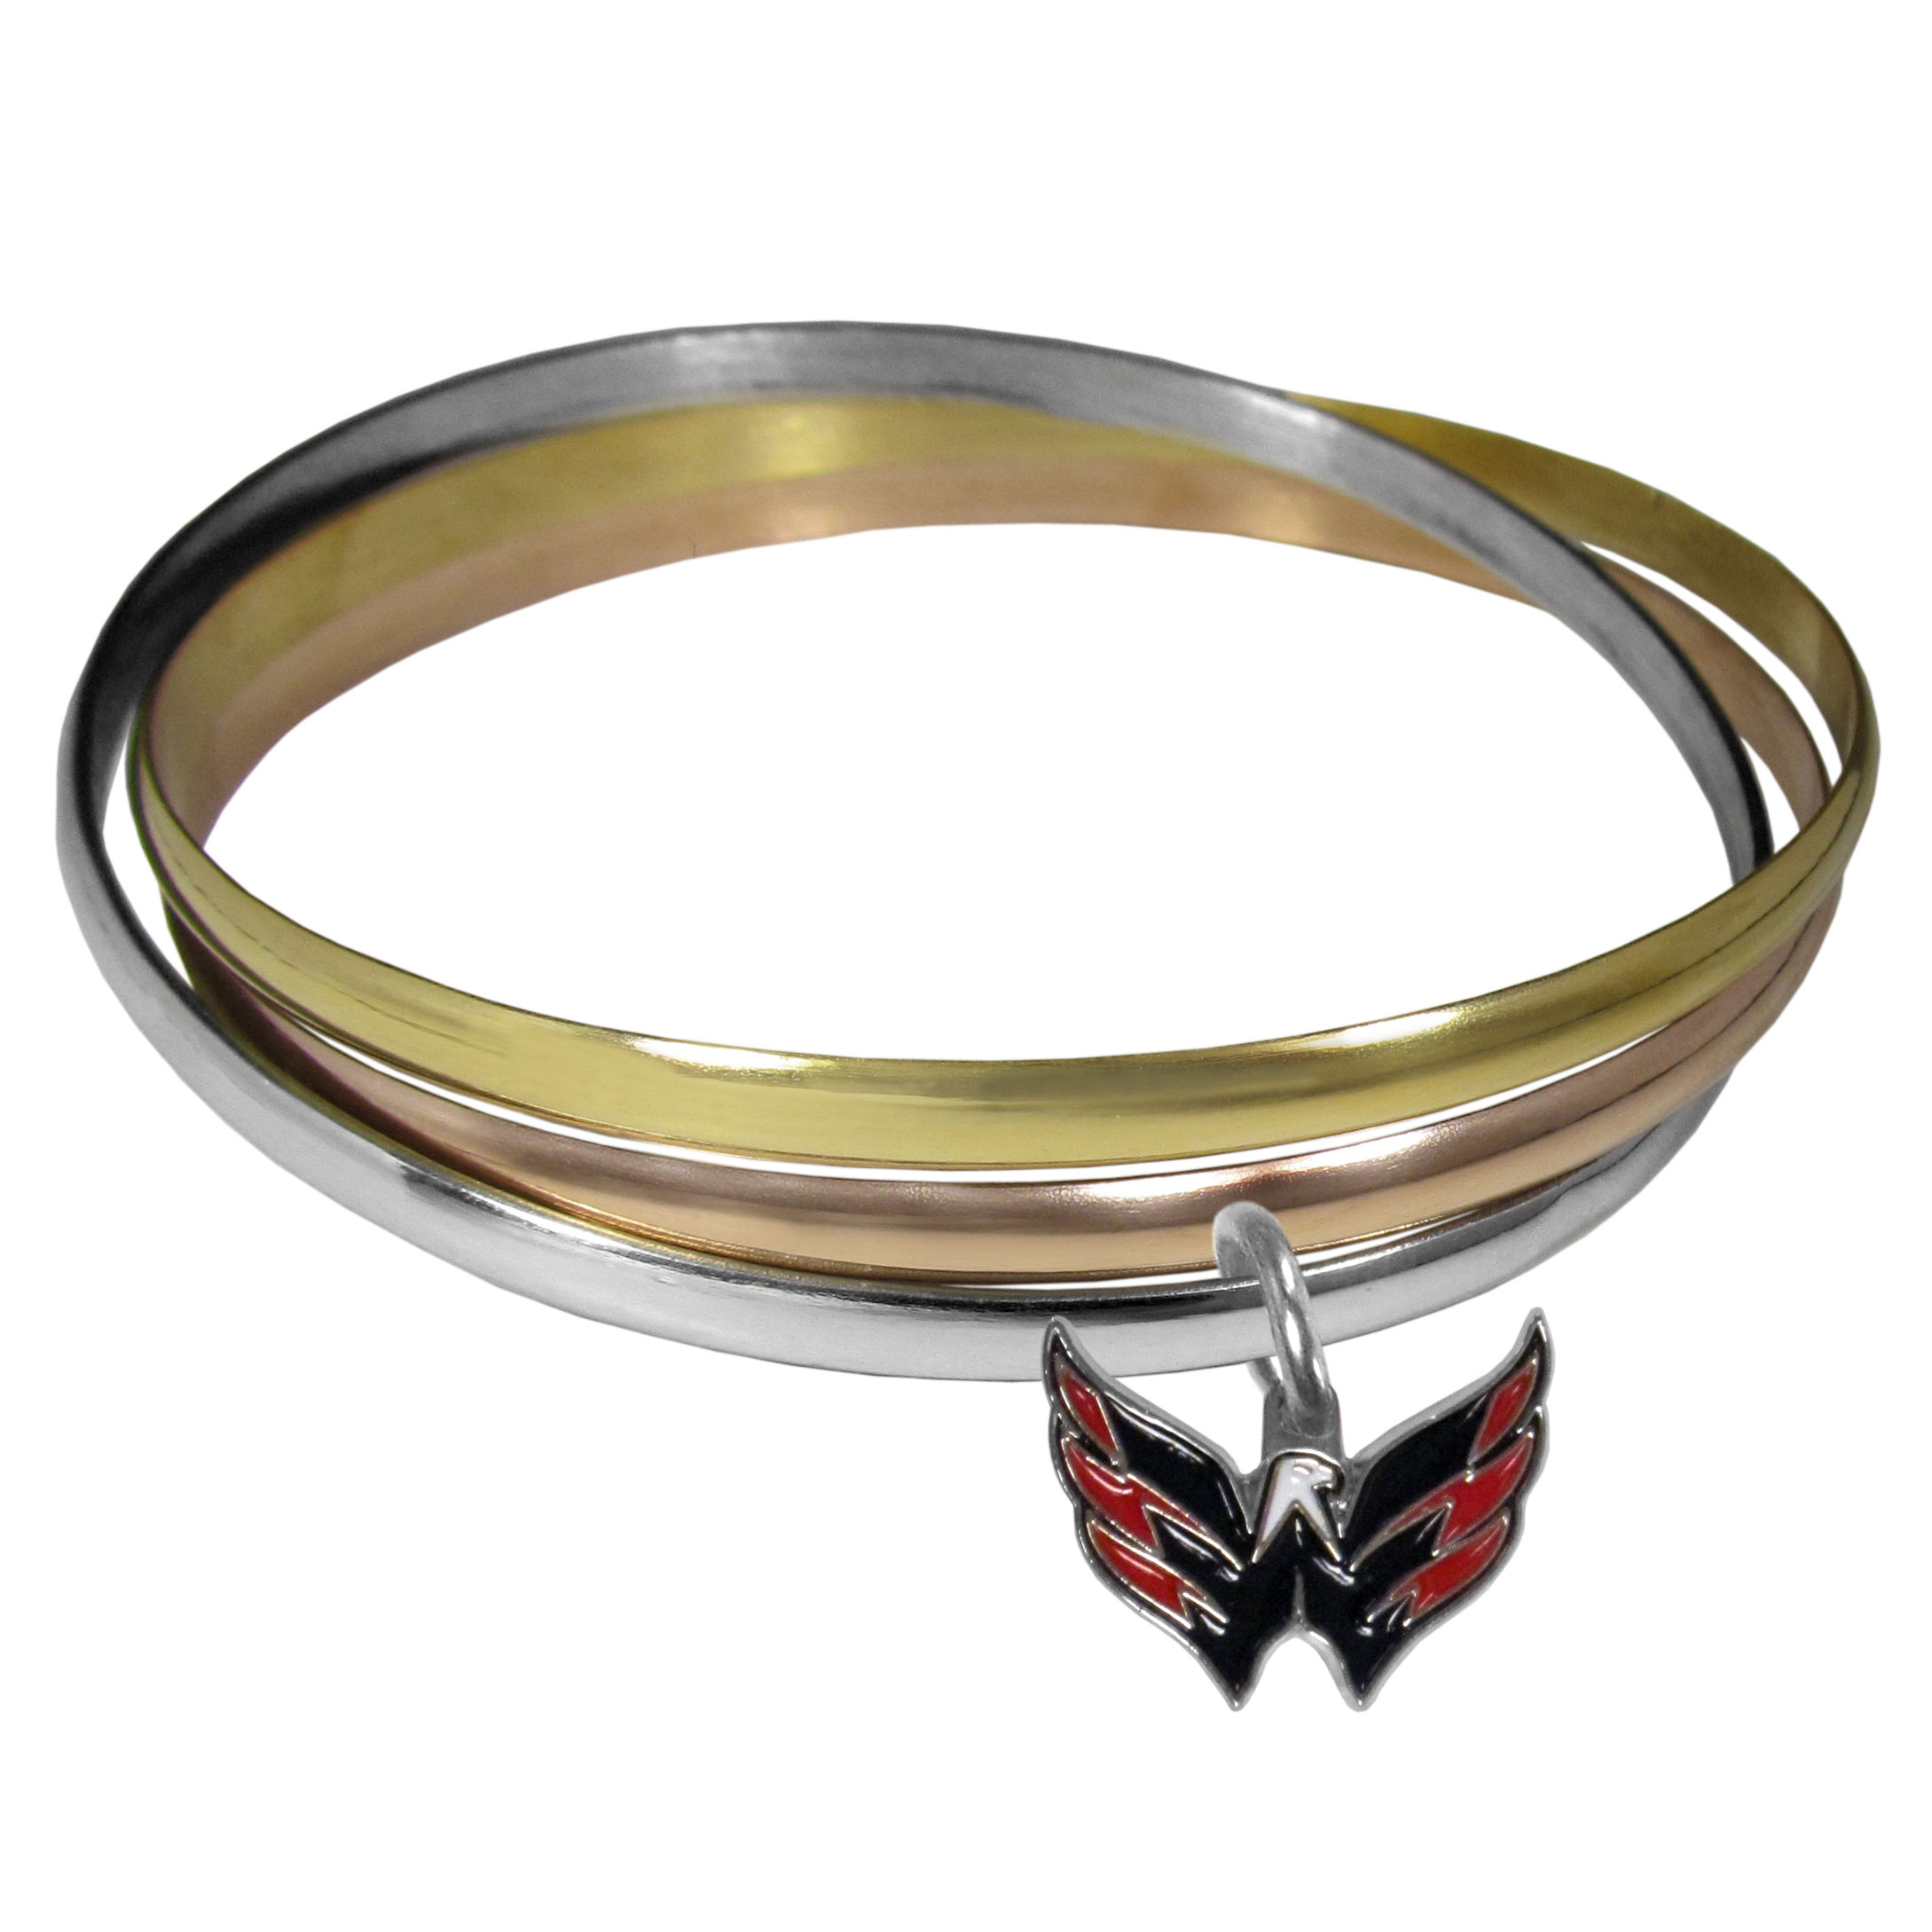 Washington Capitals® Tri-color Bangle Bracelet - These beautiful bangles come in a interlocking style and feature a fully cast Washington Capitals® charm with enameled team colors. The bracelet has a silver toned bangle, gold tone bangle and brass toned bangle.